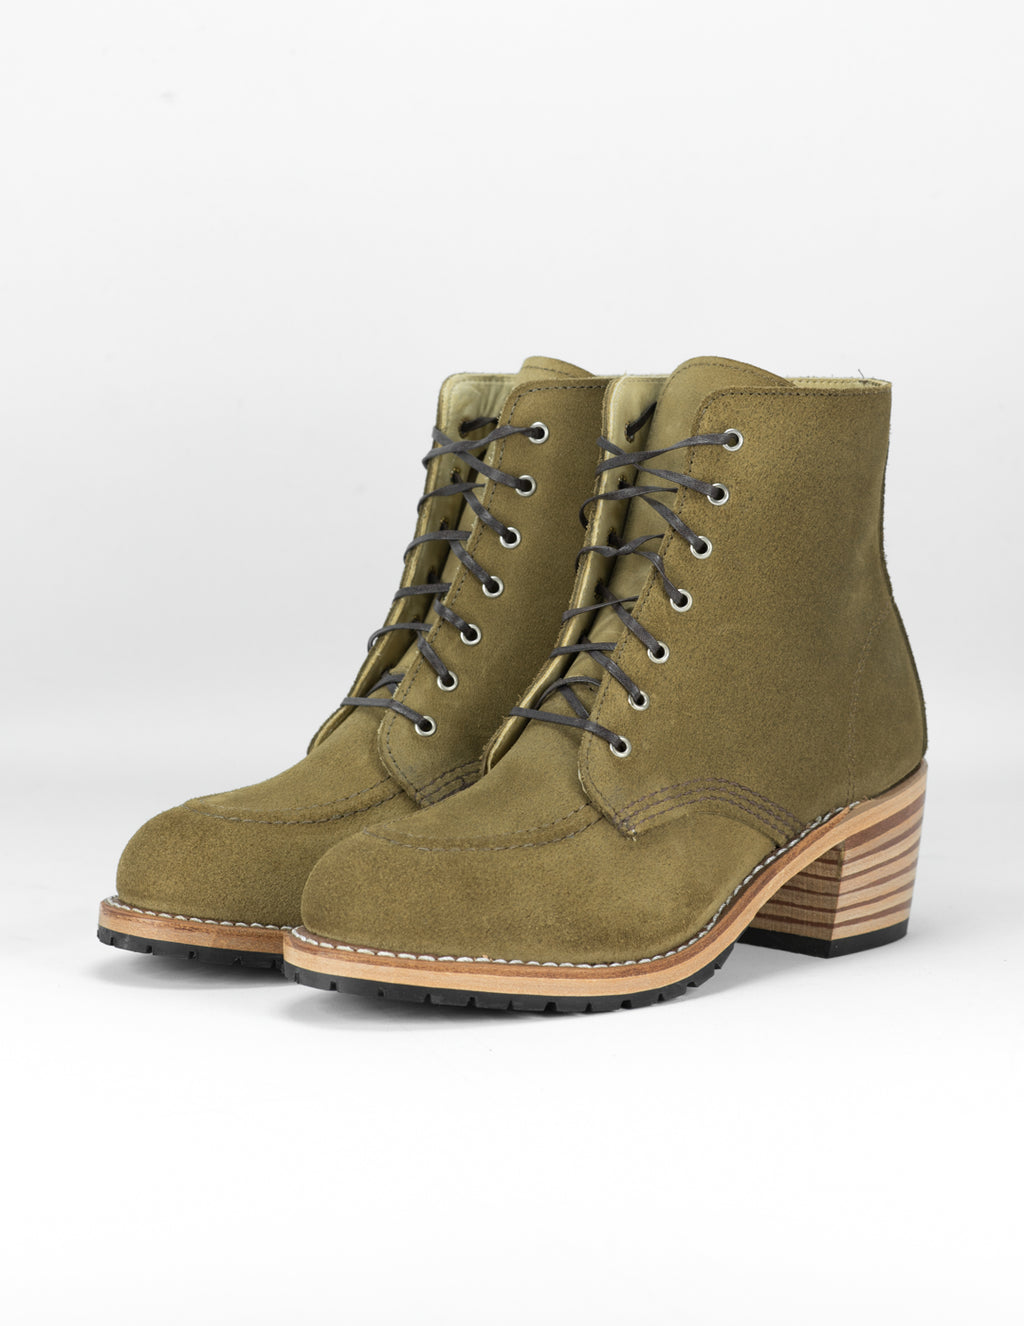 Red Wing - Clara Boot no 3402